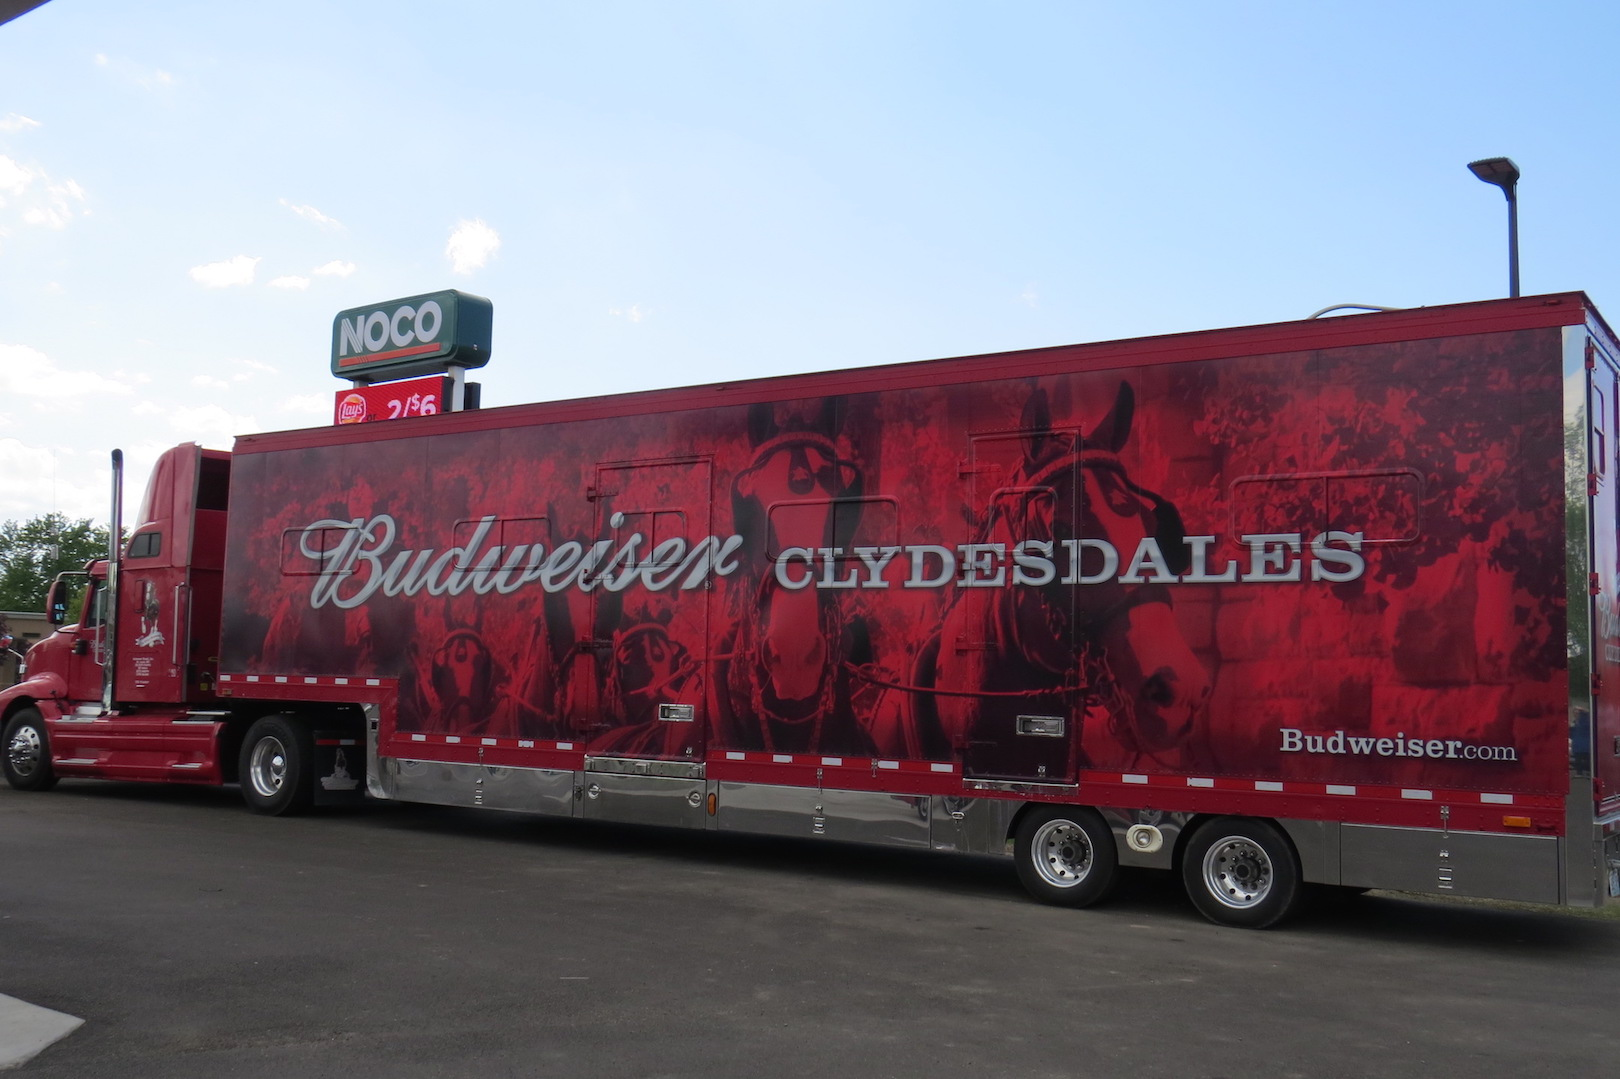 Clydesdale casino